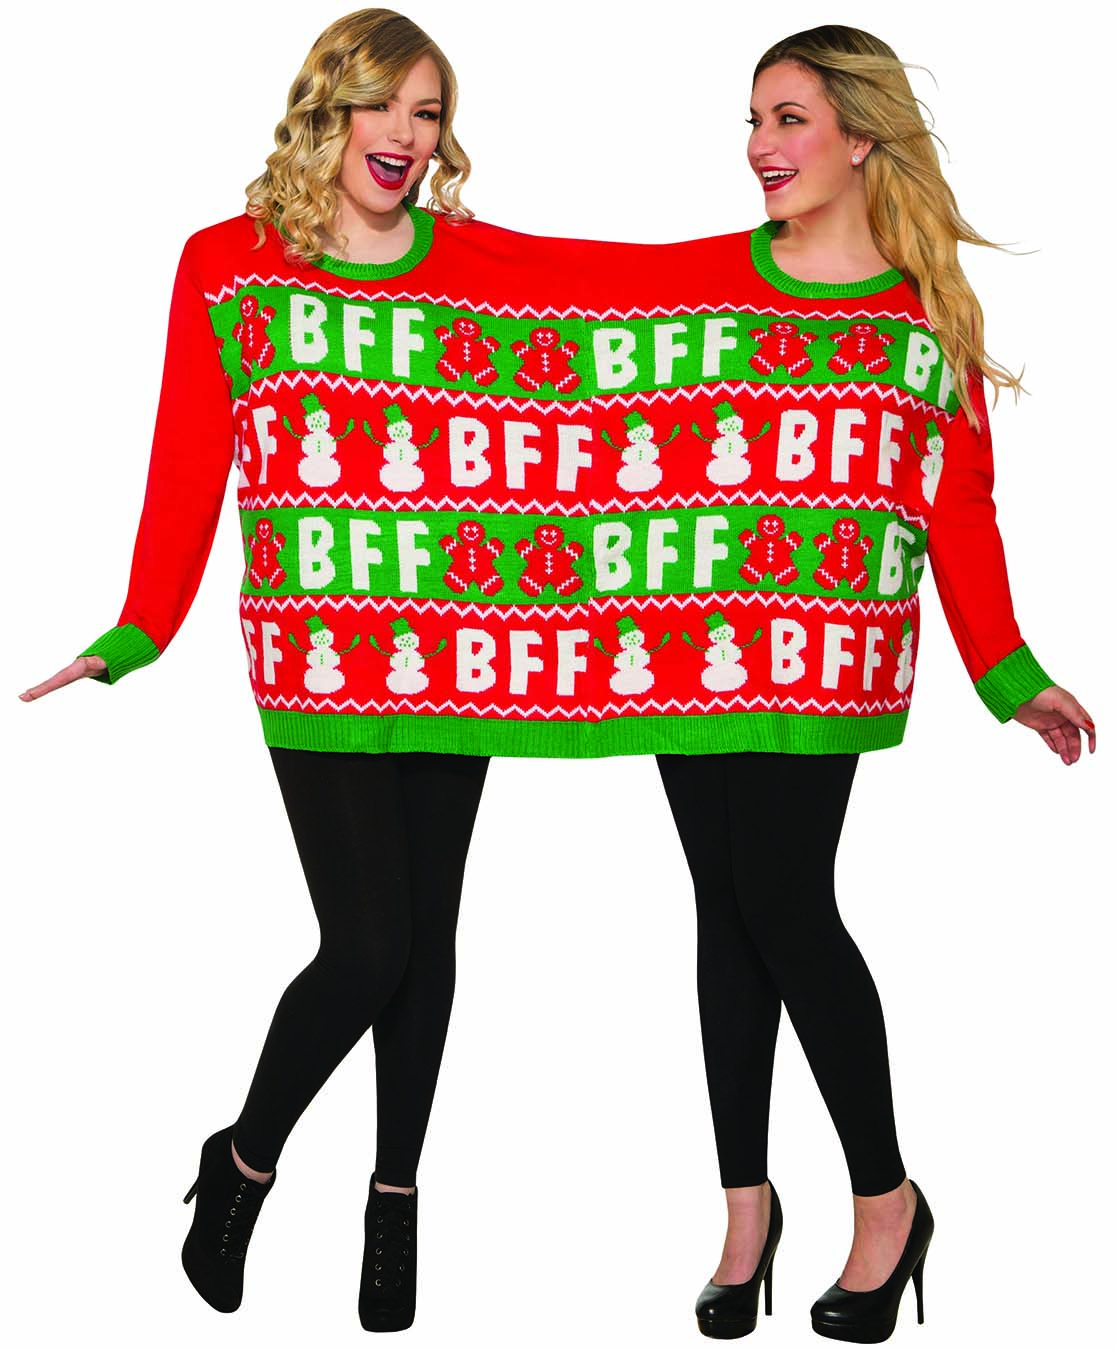 Best Friends Sweater for Two Girls Best